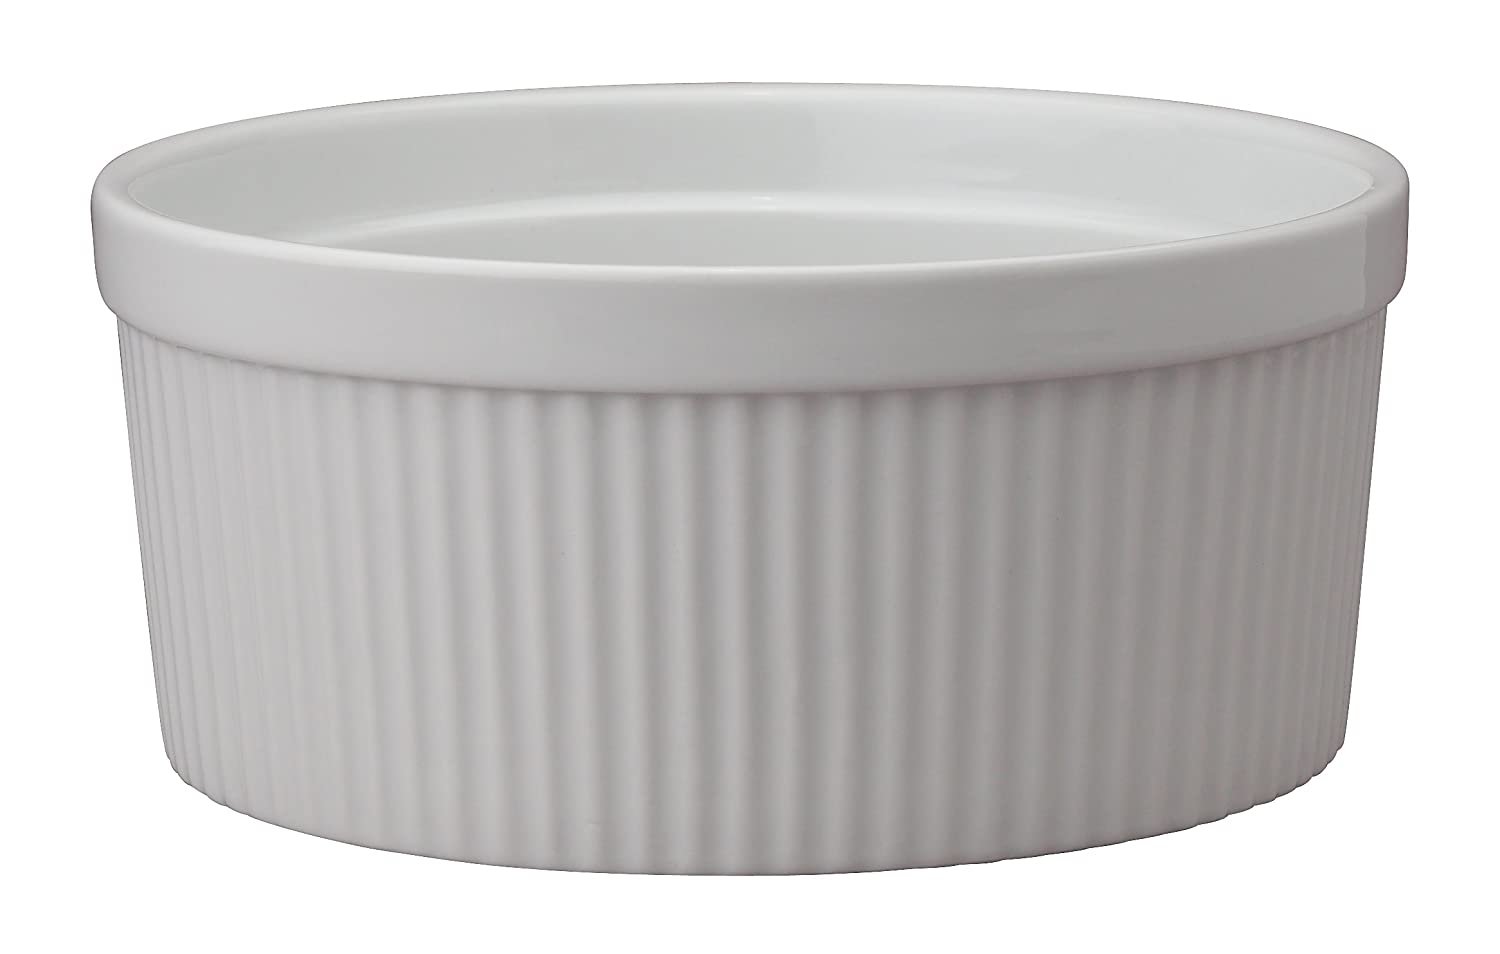 HIC Harold Import Co. 98012 Souffle, Fine White Porcelain, 8-Inch, 64-Ounce